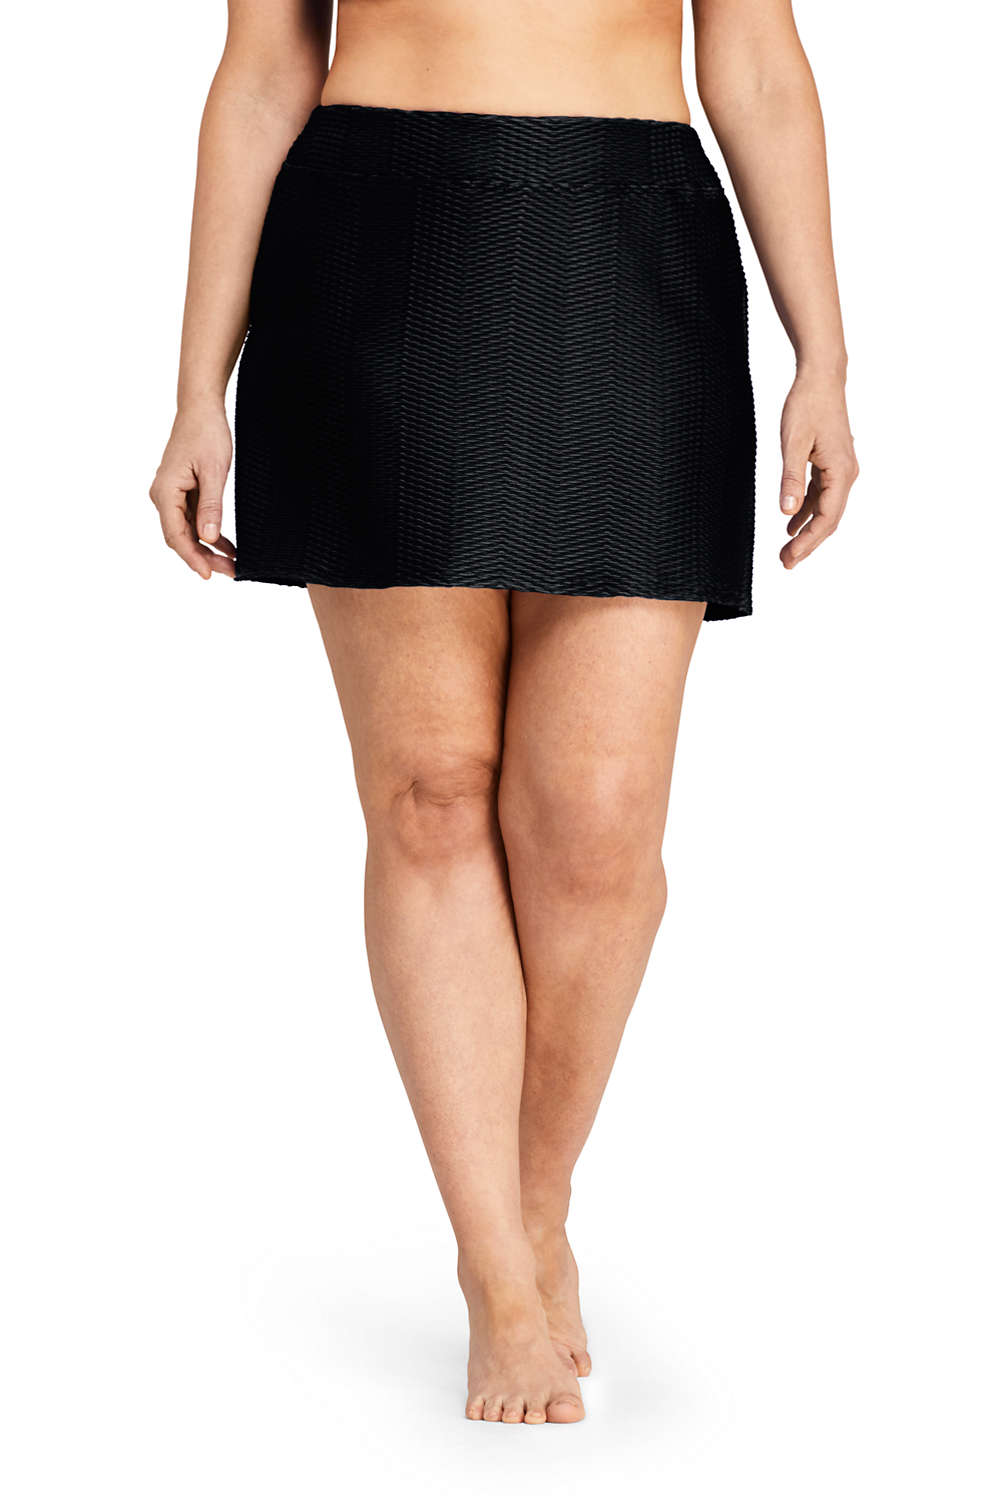 edb01f6d1c7 Women's Plus Size Texture SwimMini Swim Skirt from Lands' End